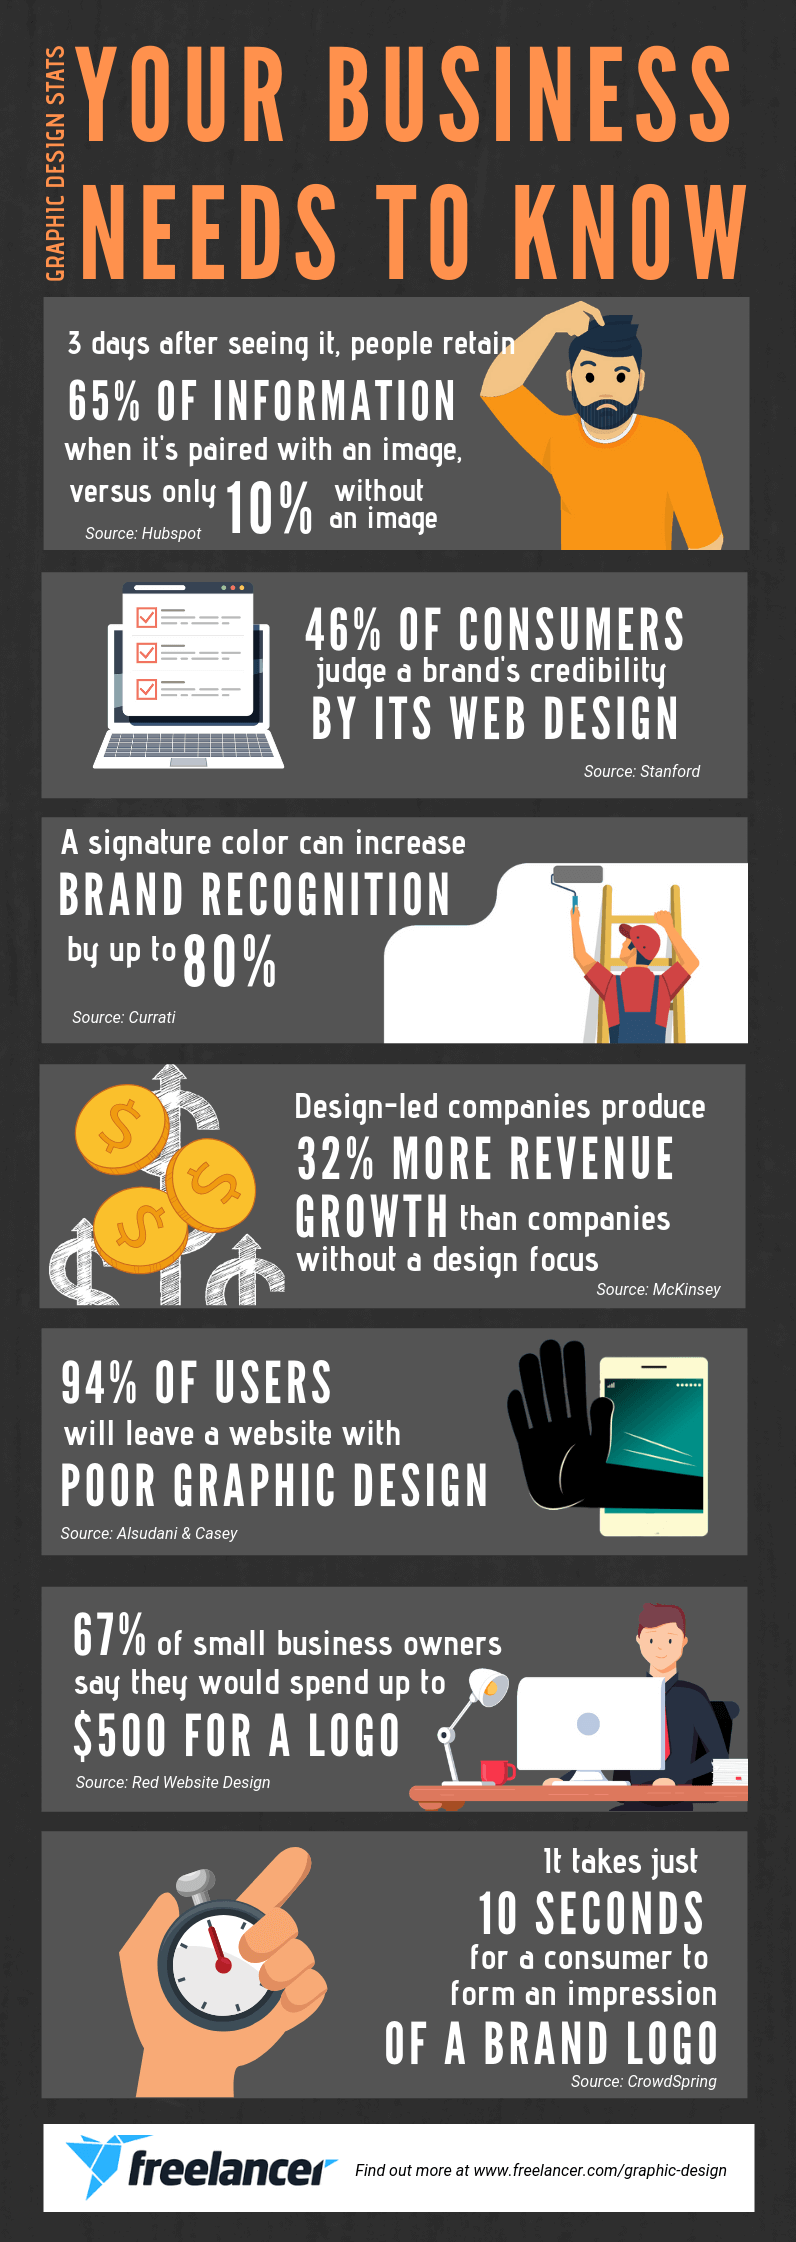 graphic design stats 2020 infographic